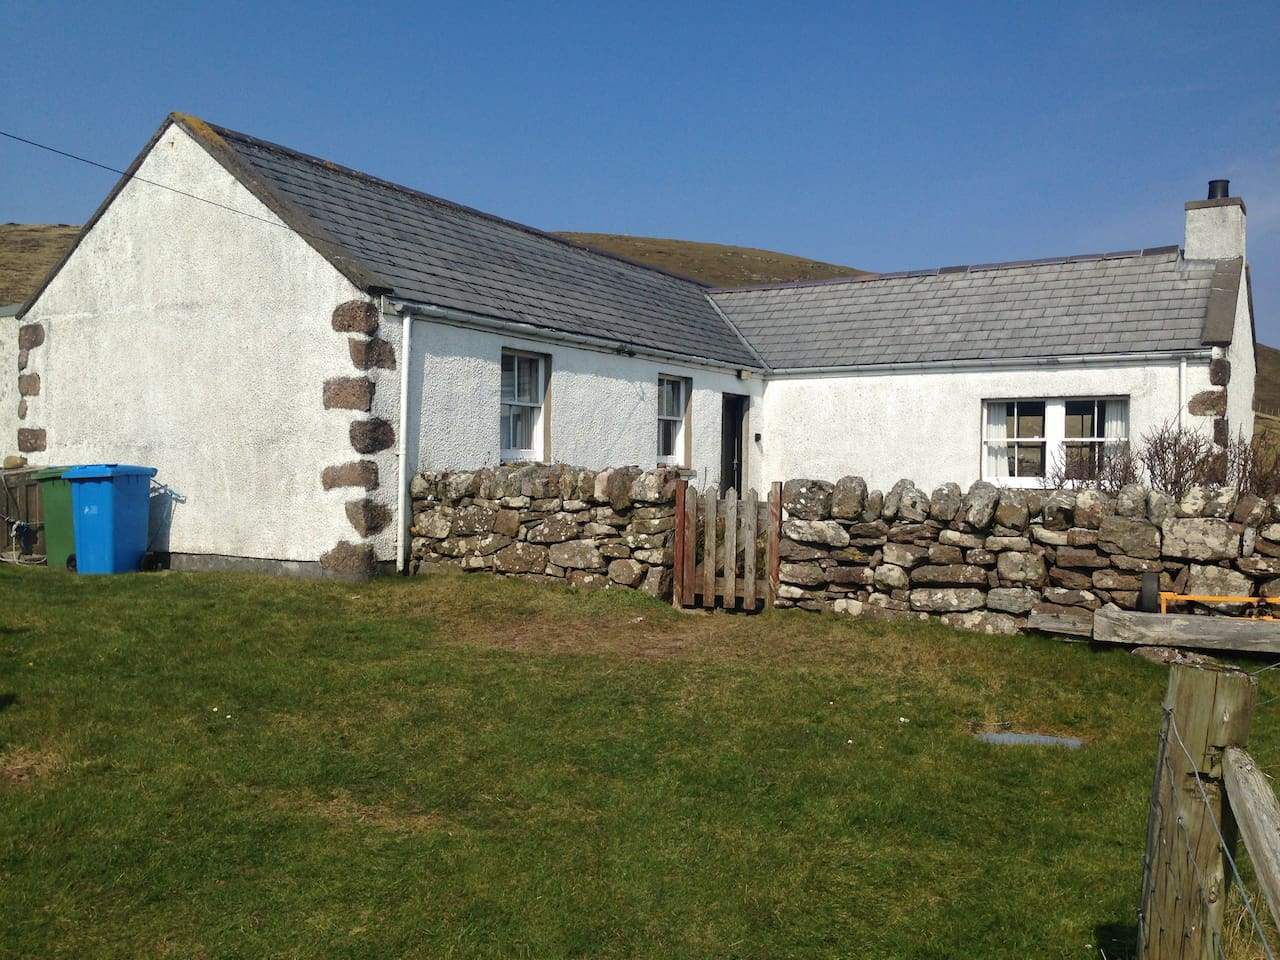 The cottage from the front